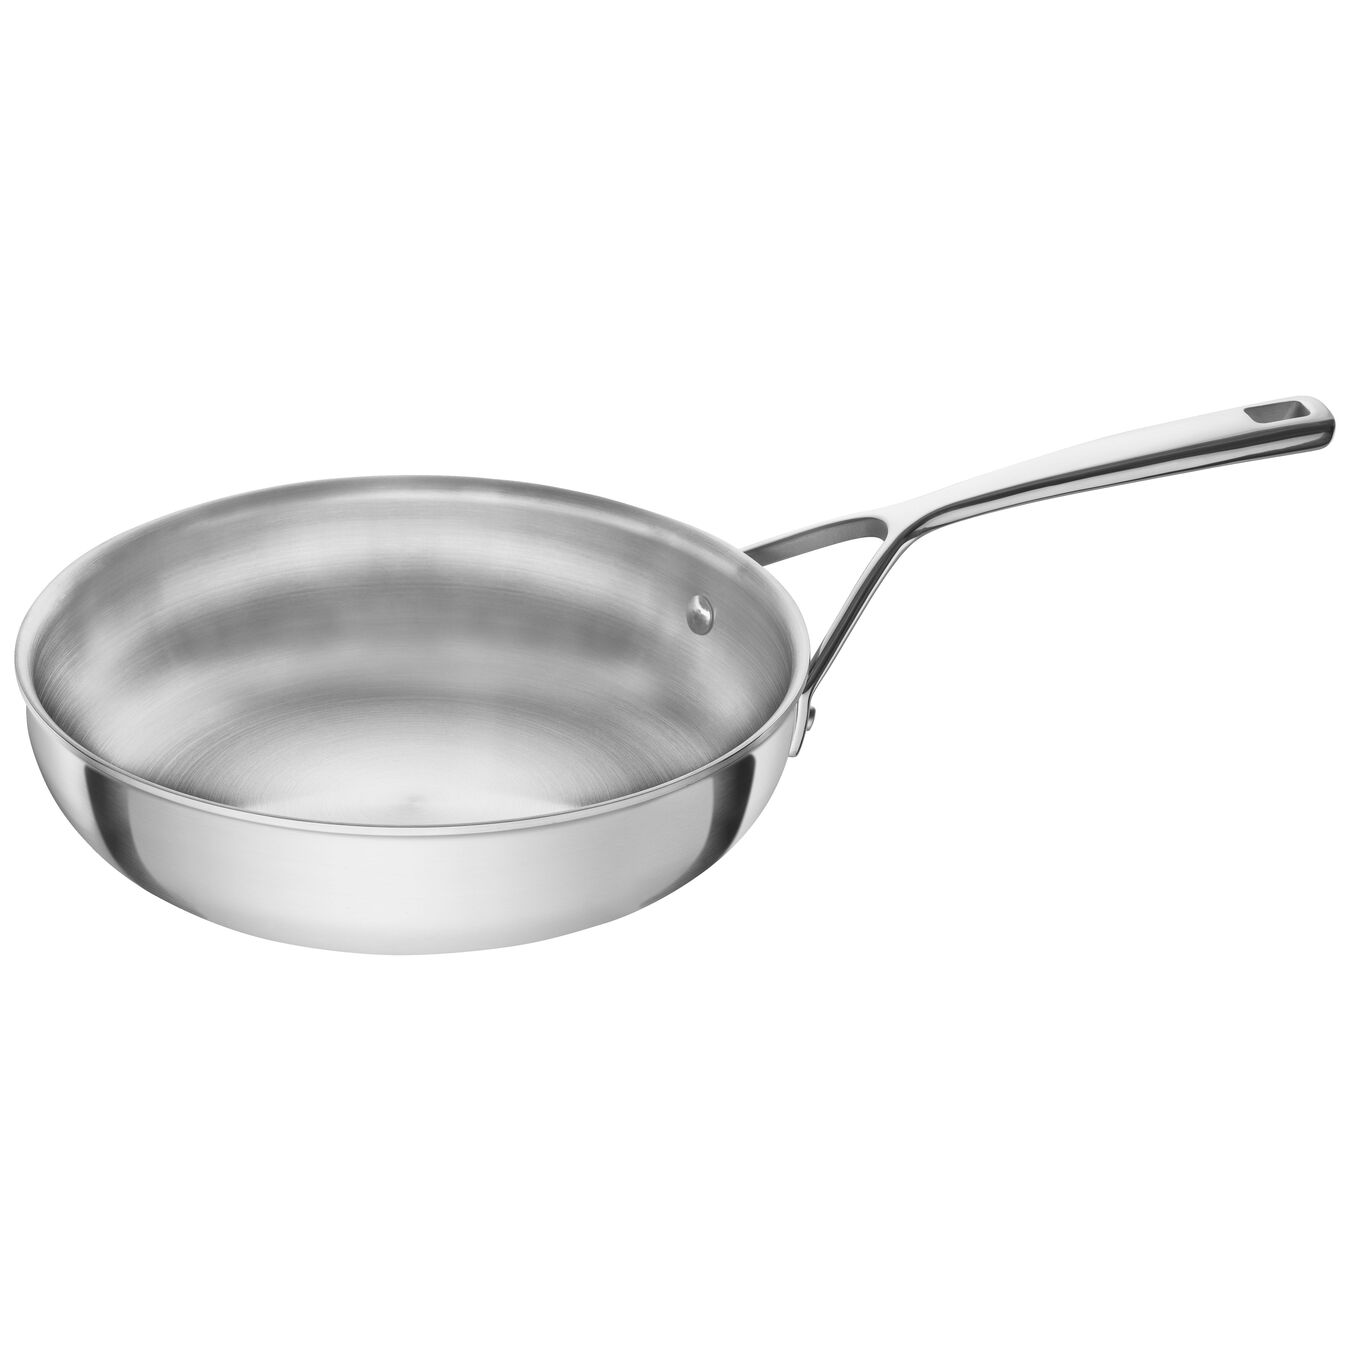 24 cm 18/10 Stainless Steel Poêle,,large 1